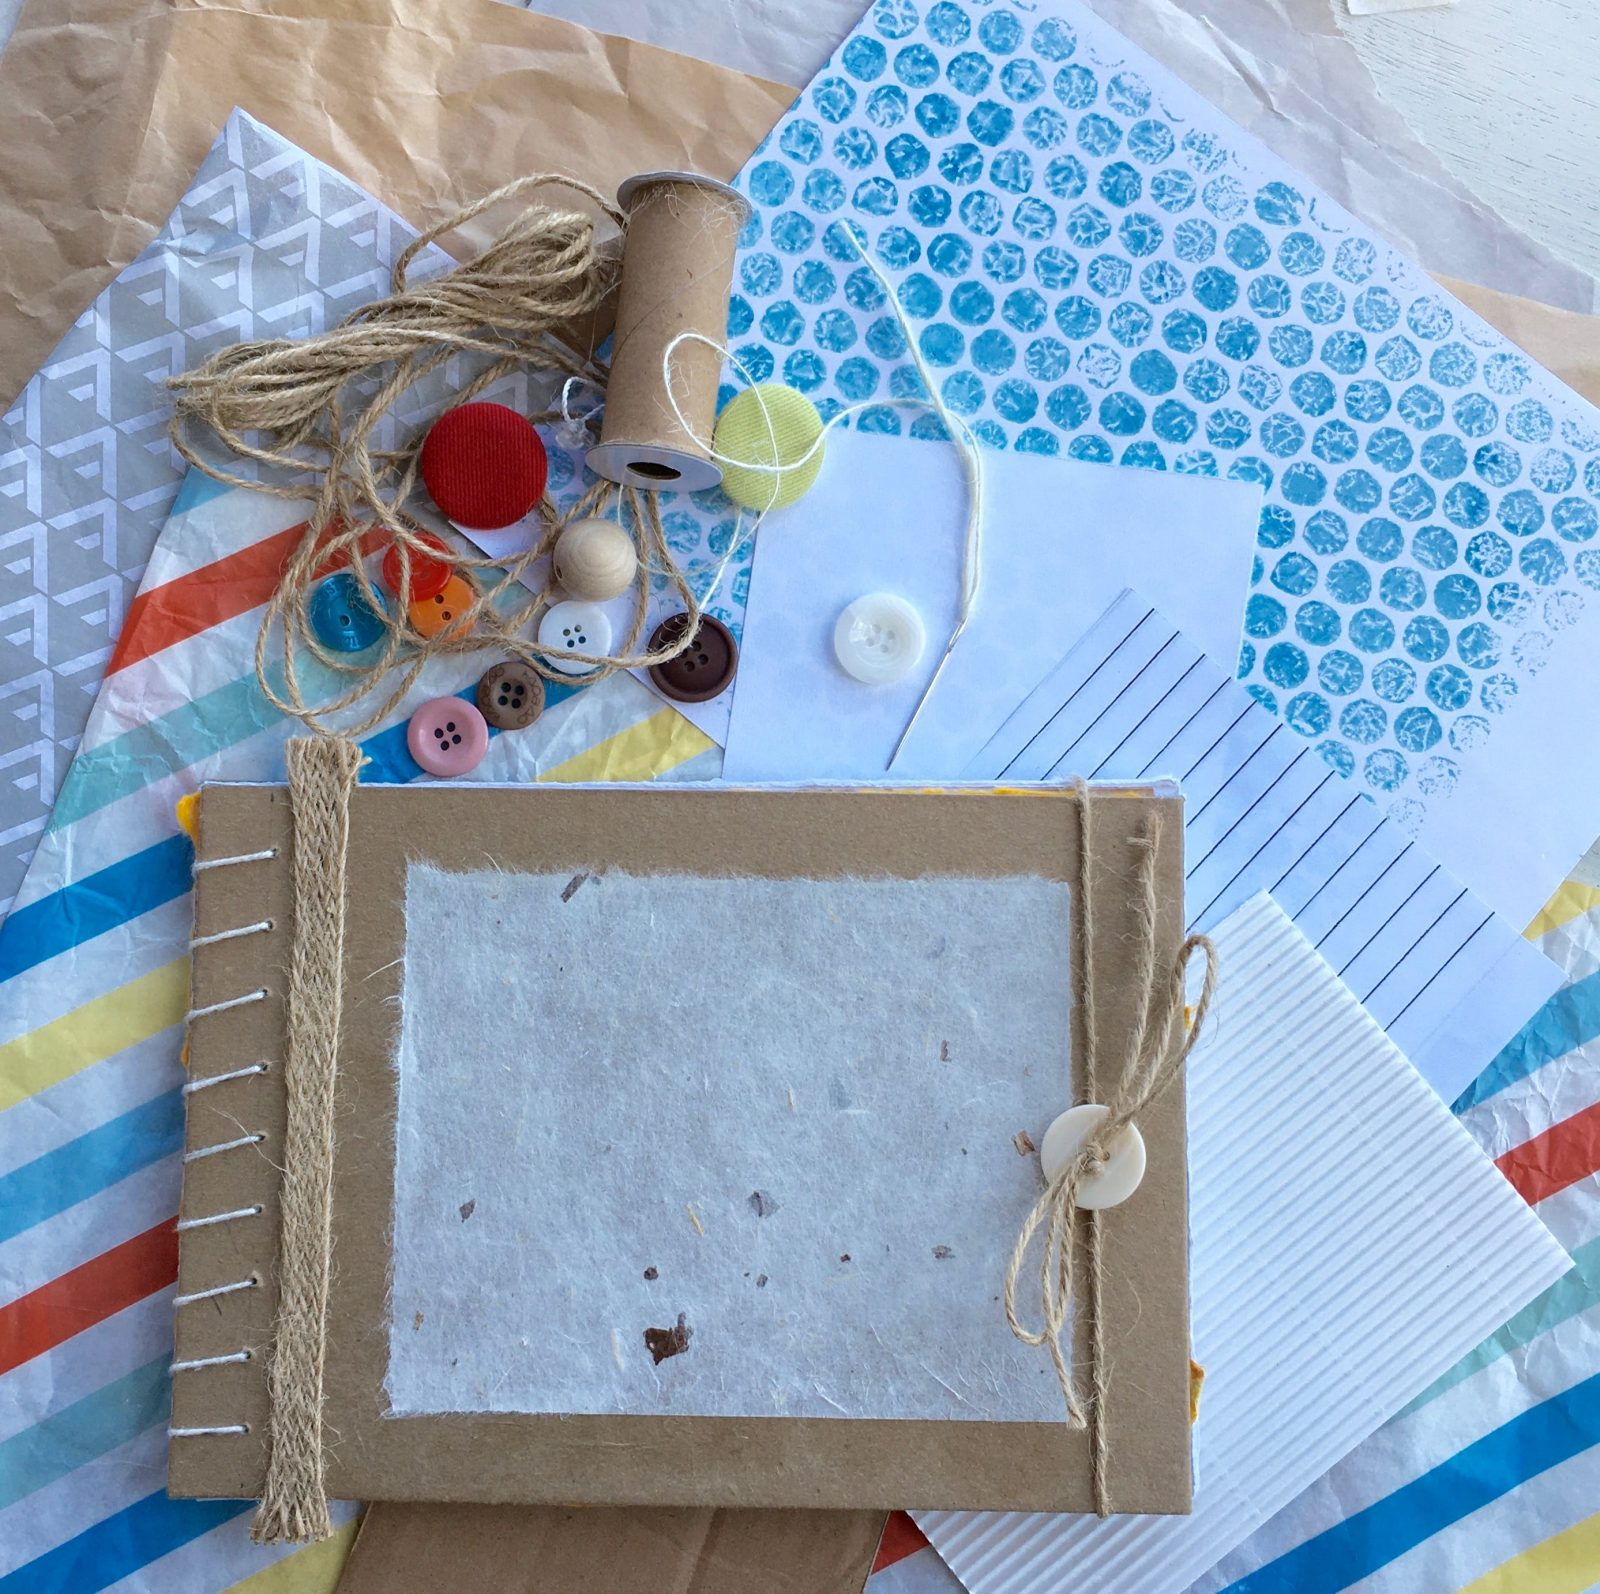 Handmade book, recycled paper with buttons and string